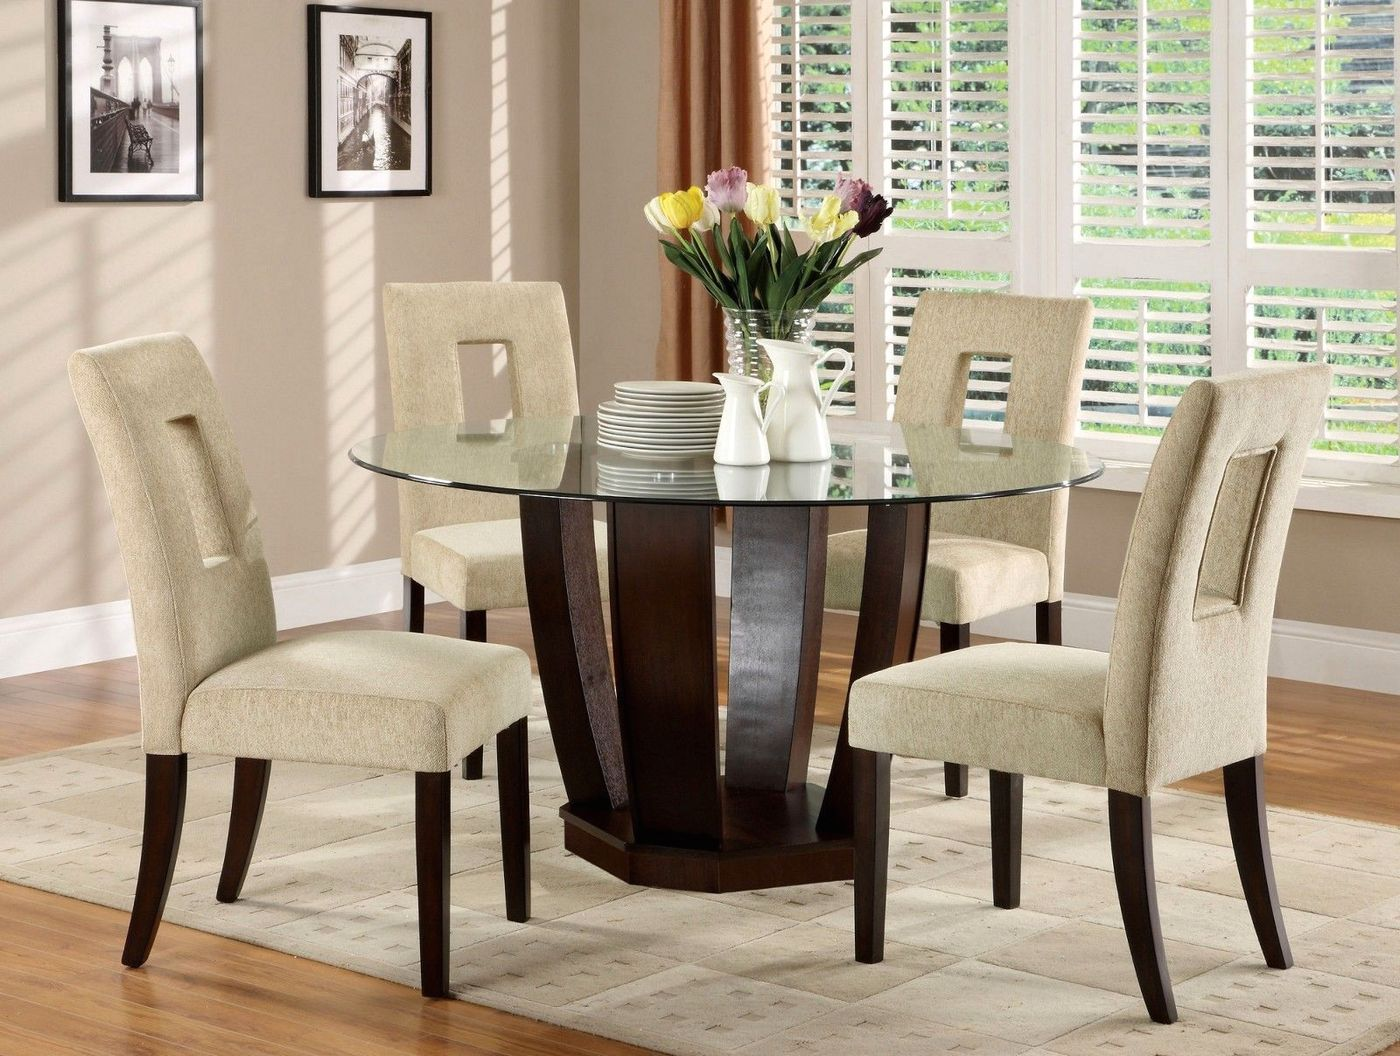 Cheap dining room sets under 200